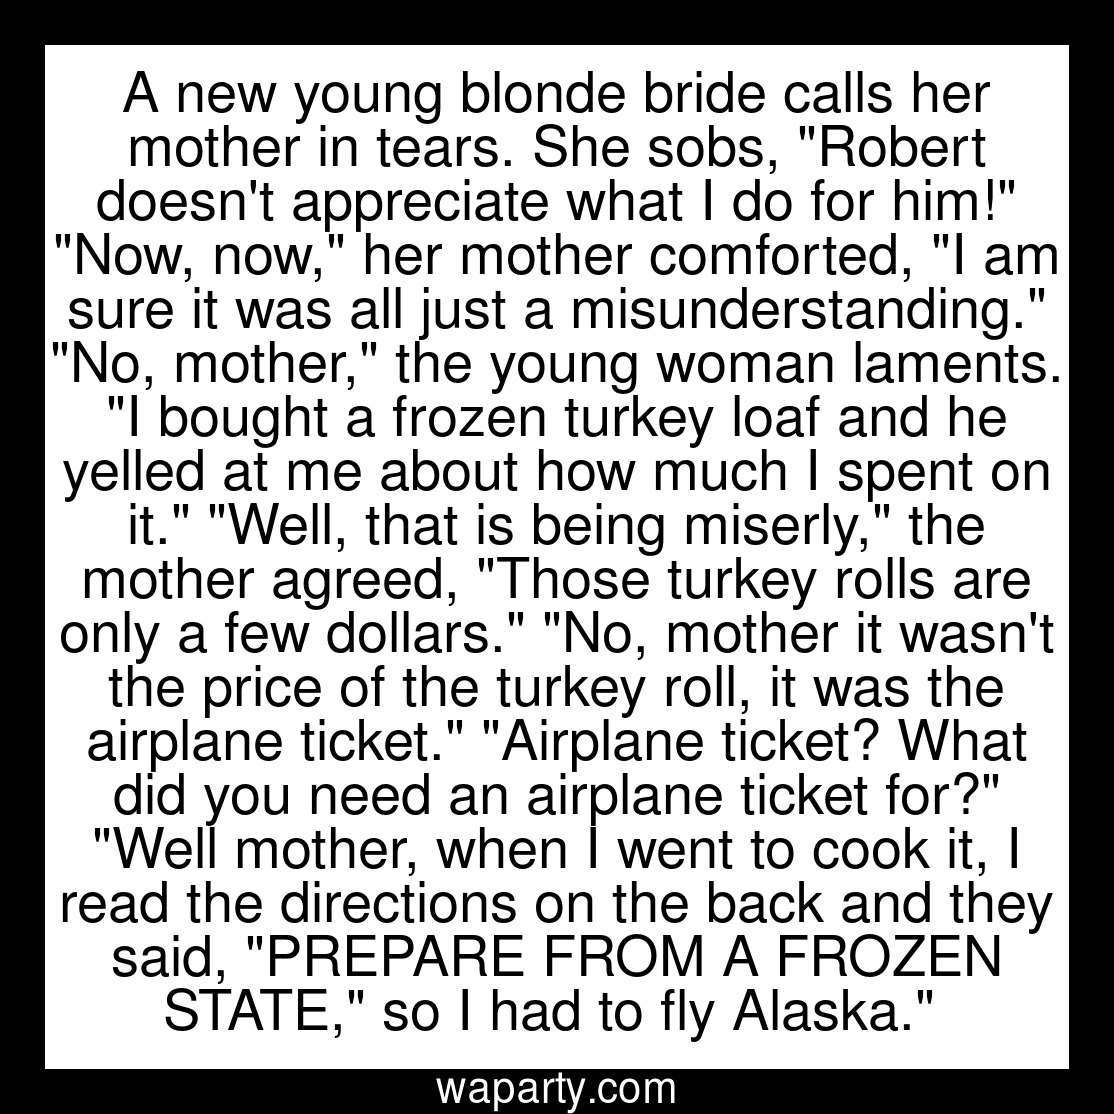 A new young blonde bride calls her mother in tears. She sobs, Robert doesnt appreciate what I do for him! Now, now, her mother comforted, I am sure it was all just a misunderstanding. No, mother, the young woman laments. I bought a frozen turkey loaf and he yelled at me about how much I spent on it. Well, that is being miserly, the mother agreed, Those turkey rolls are only a few dollars. No, mother it wasnt the price of the turkey roll, it was the airplane ticket. Airplane ticket? What did you need an airplane ticket for? Well mother, when I went to cook it, I read the directions on the back and they said, PREPARE FROM A FROZEN STATE, so I had to fly Alaska.